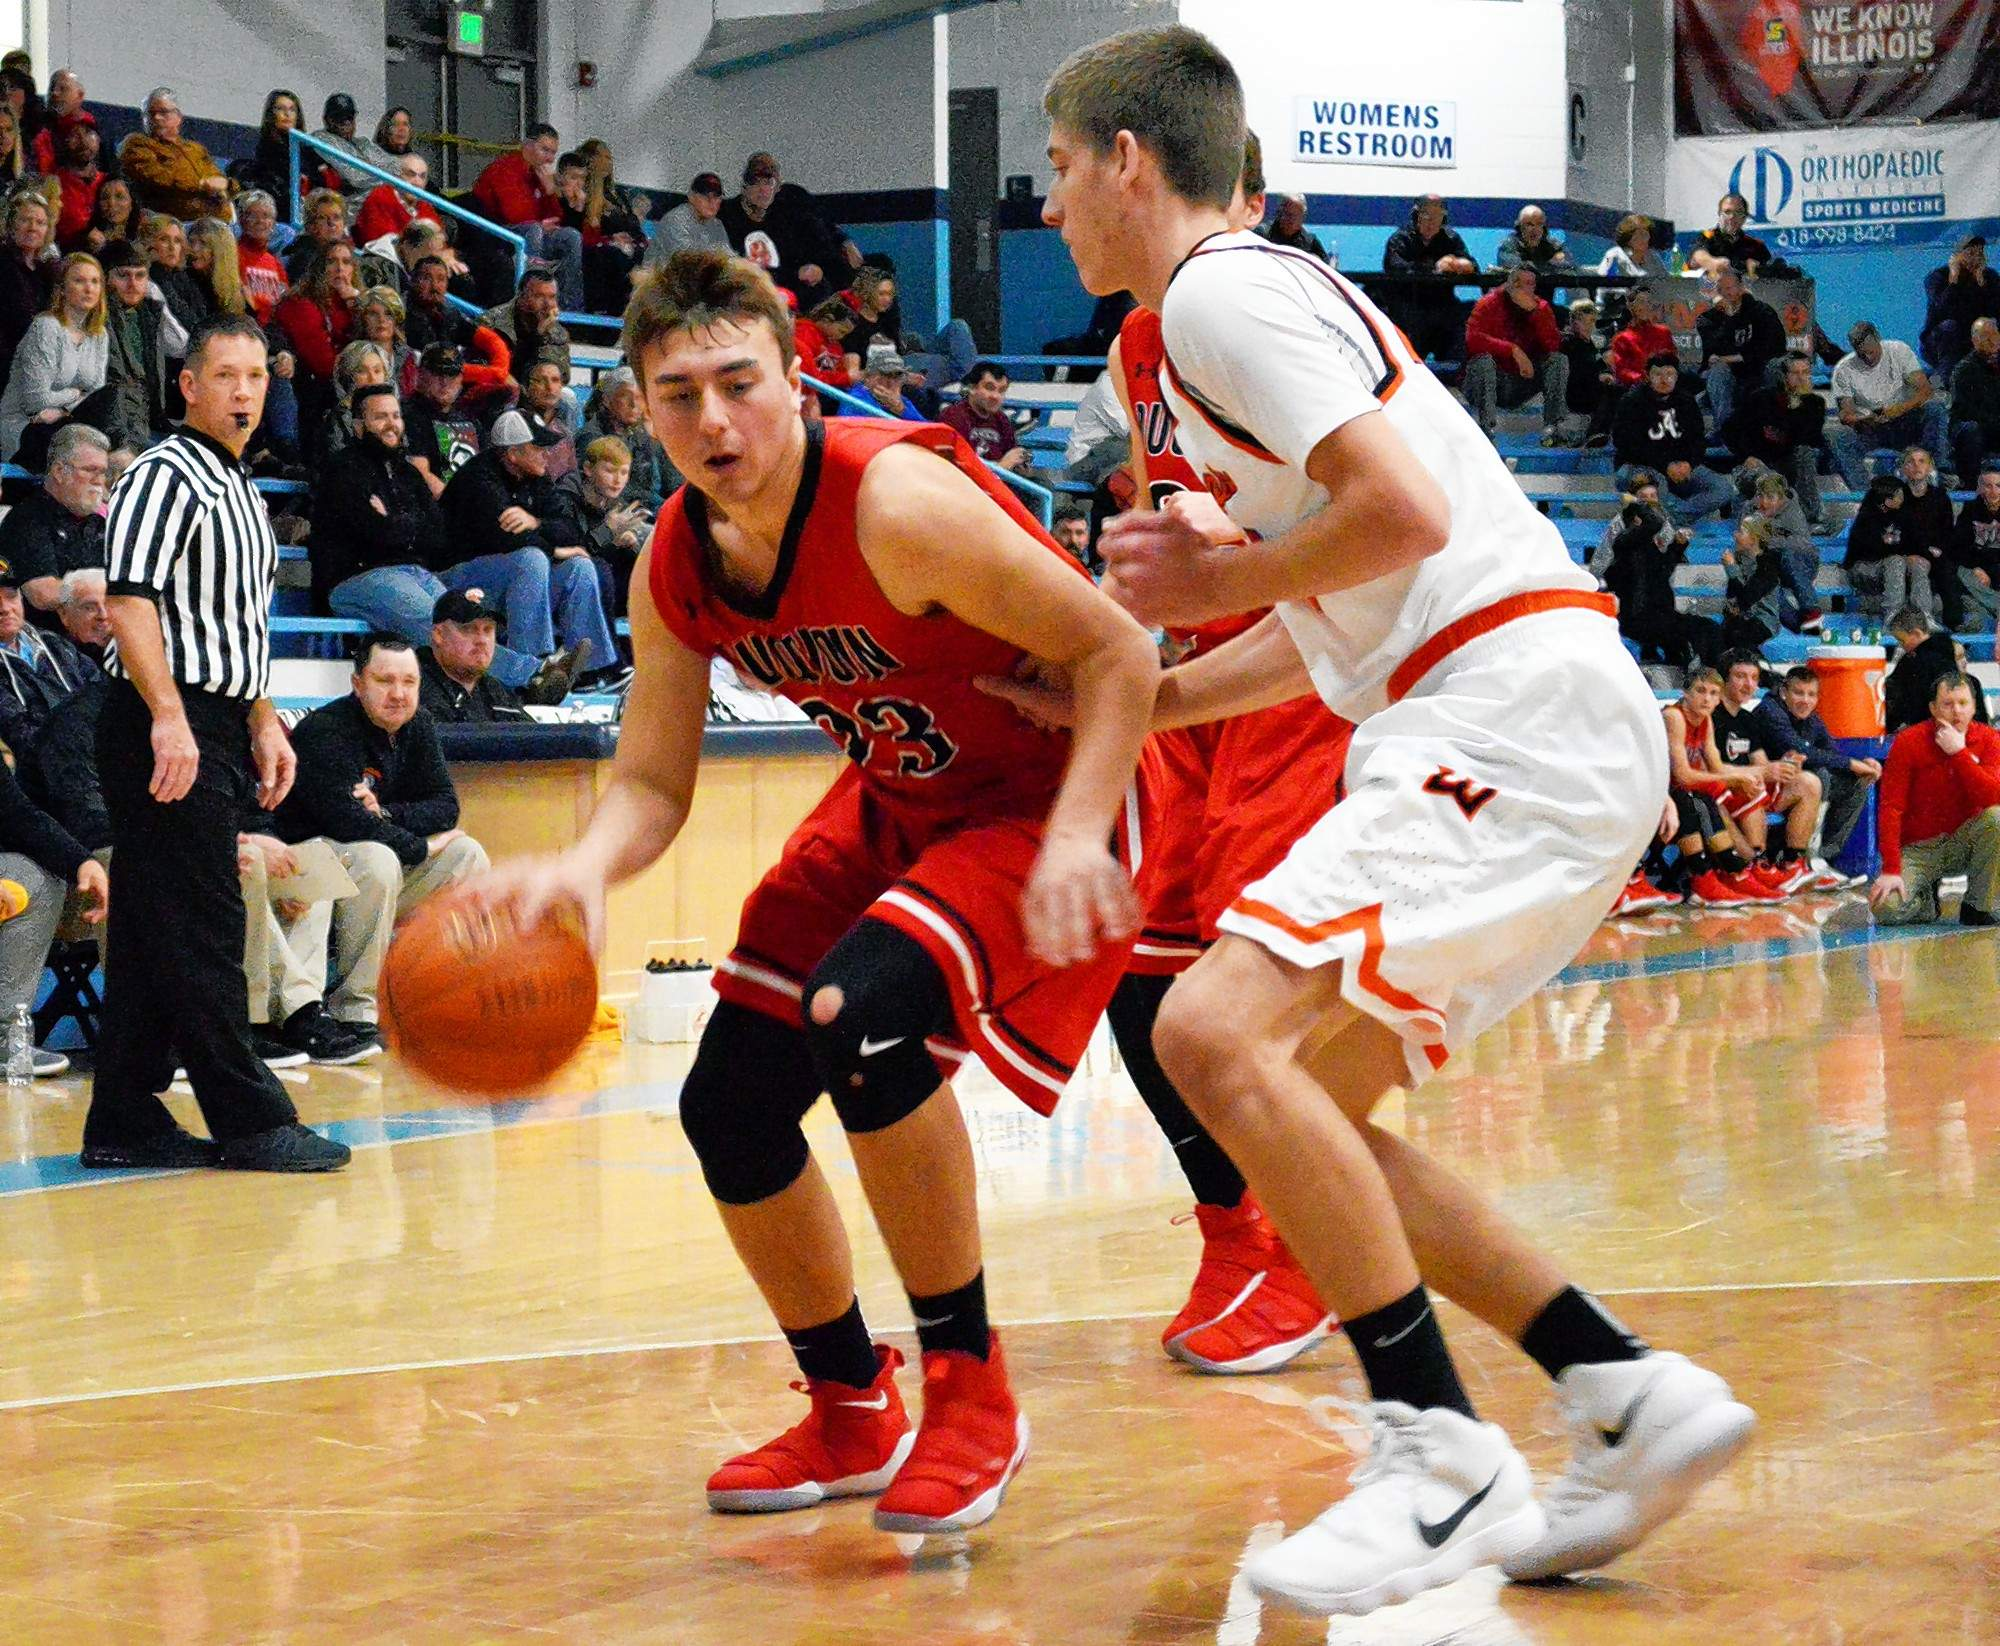 Du Quoin's Braeden Pursell (left) keeps possession of the ball against a Wesclin defender Saturday afternoon during the first round of the Gold Pool games of the Duster Thomas Hoops Classic.